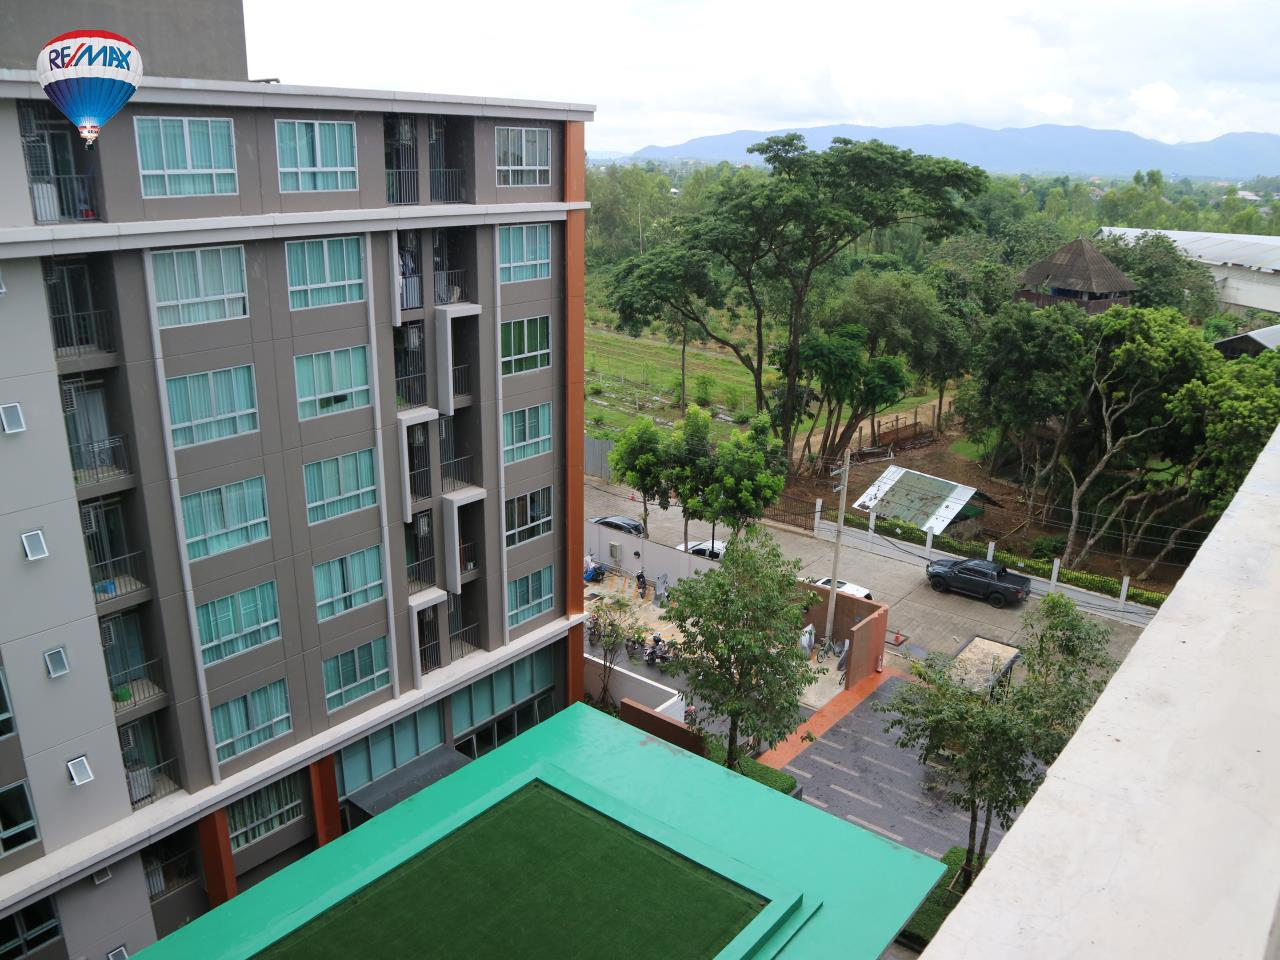 RE/MAX Classic Agency's Condominium for rent, downtown near BigC Super center Chiangrai. 26